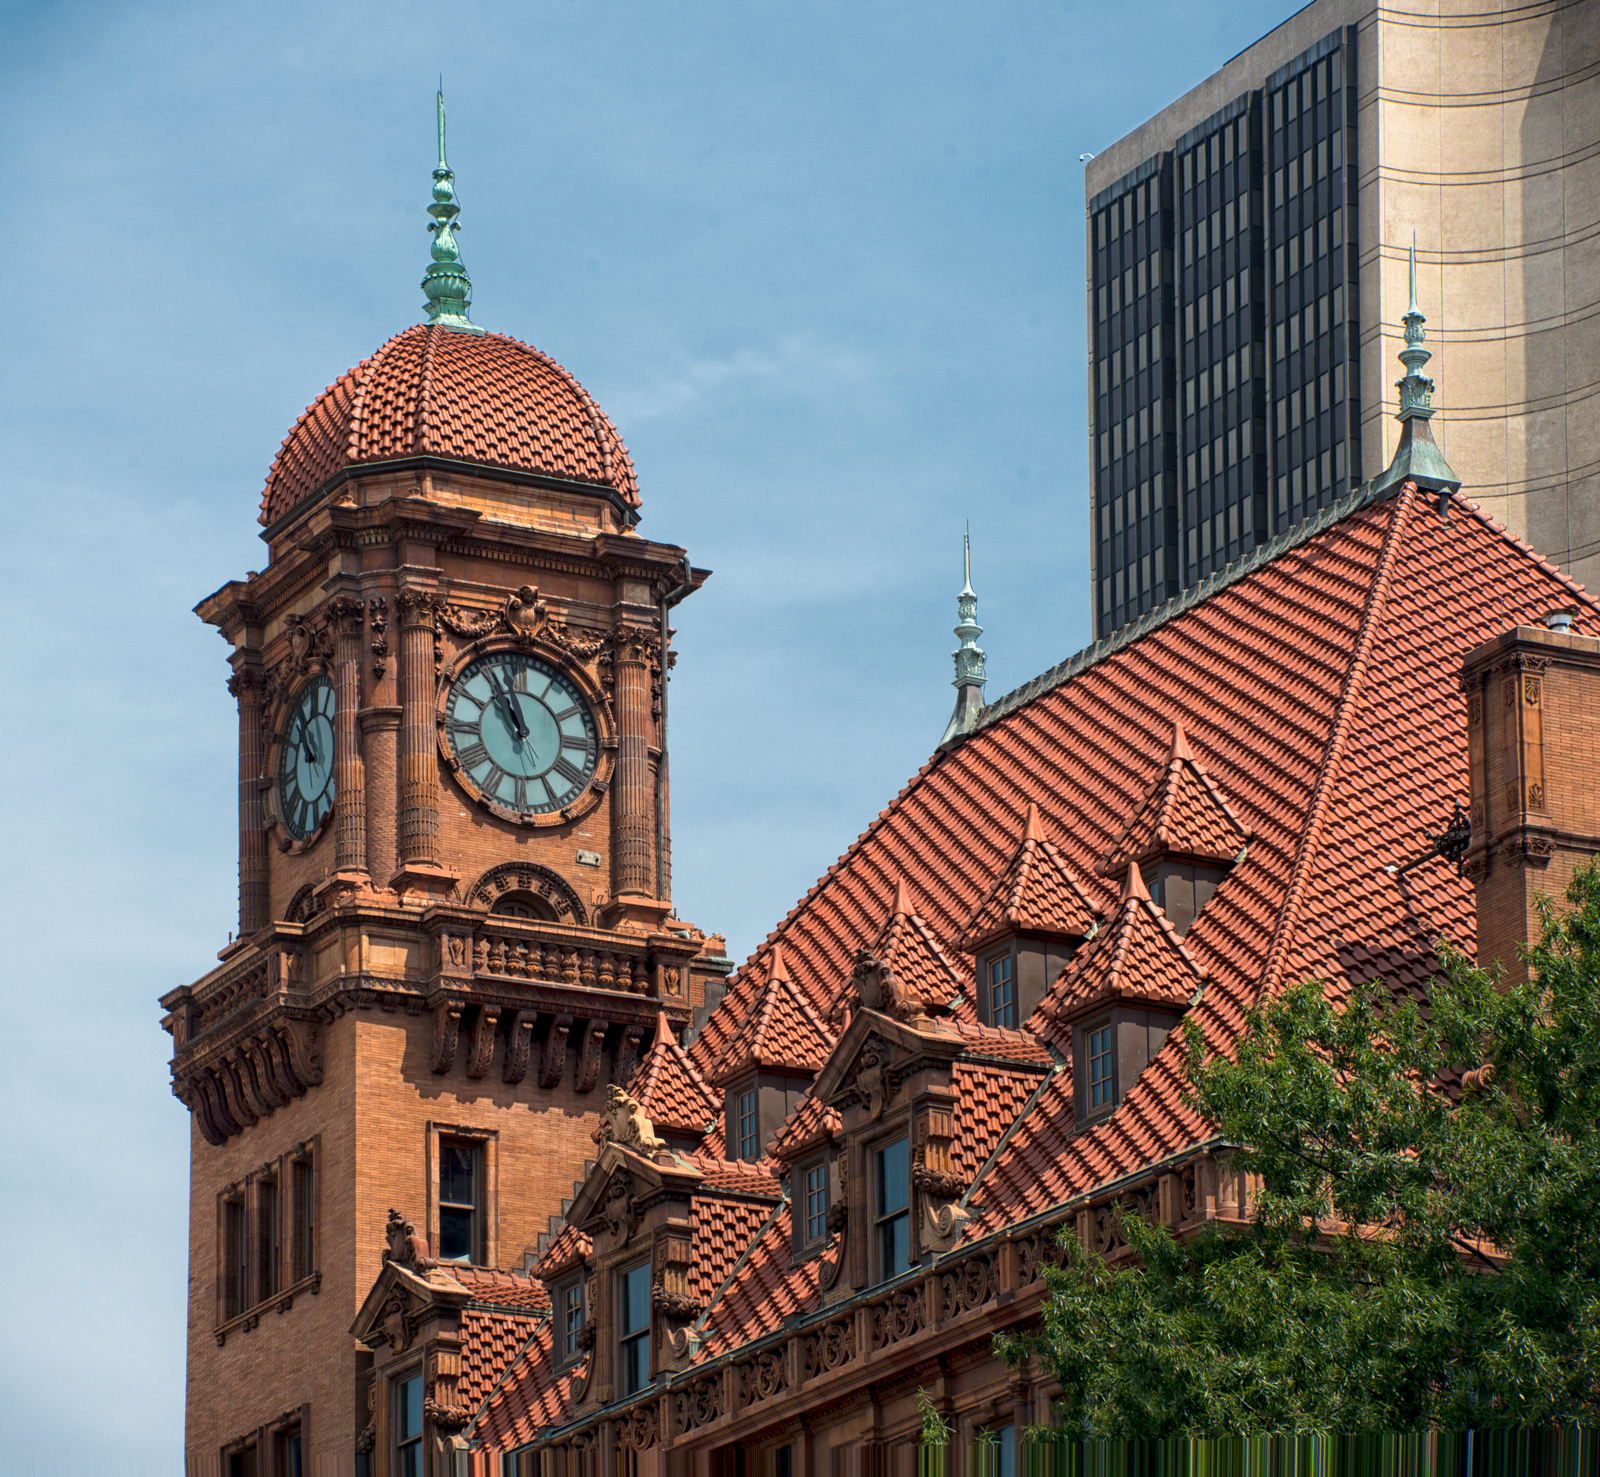 Here's a close-up of the ornate roof and clock tower. The building in the background is the James Monroe Building. It's the tallest building in Richmond, but as contrasted against Main Street Station, it's a mundane and depressing pile of steel, glass, and concrete.